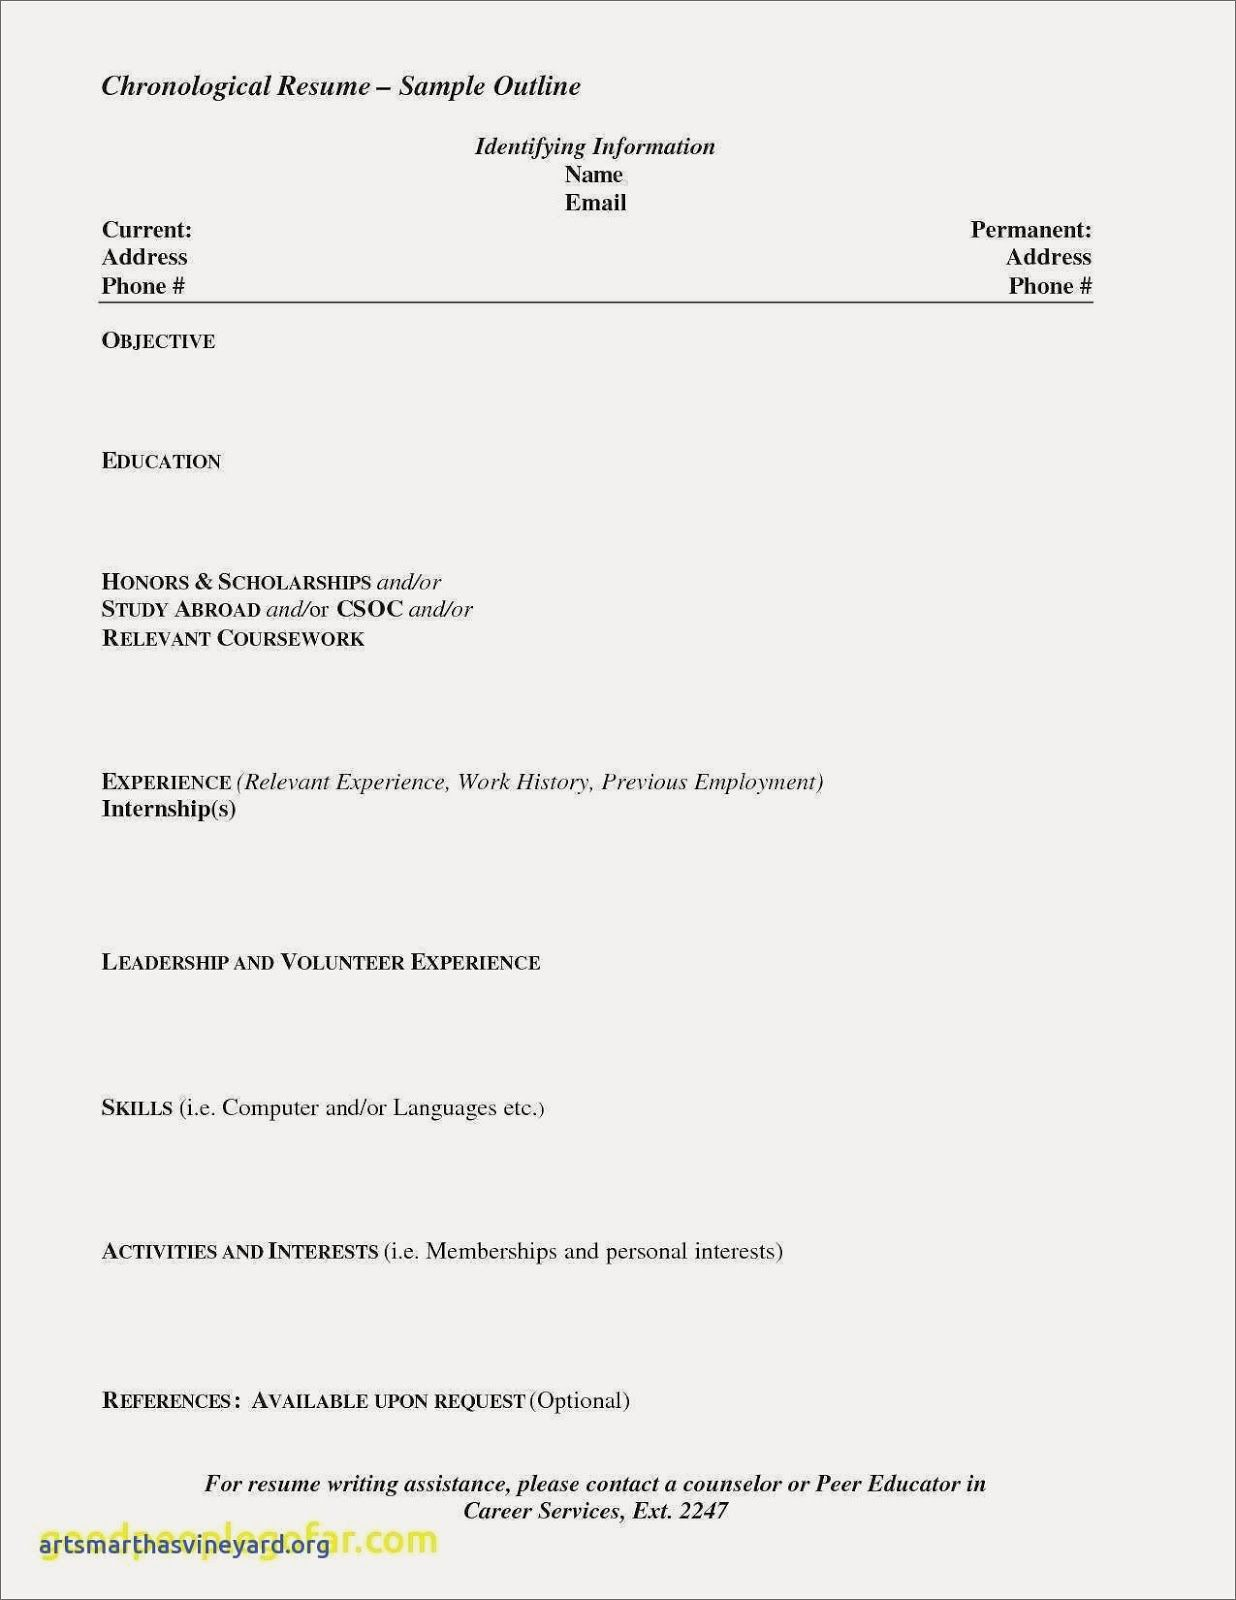 Medical Assistant Resume Examples 2019 Medical Assistant Resume Examples Medical Assistant Resume Template Examples Resume Templates Resume Writing Services